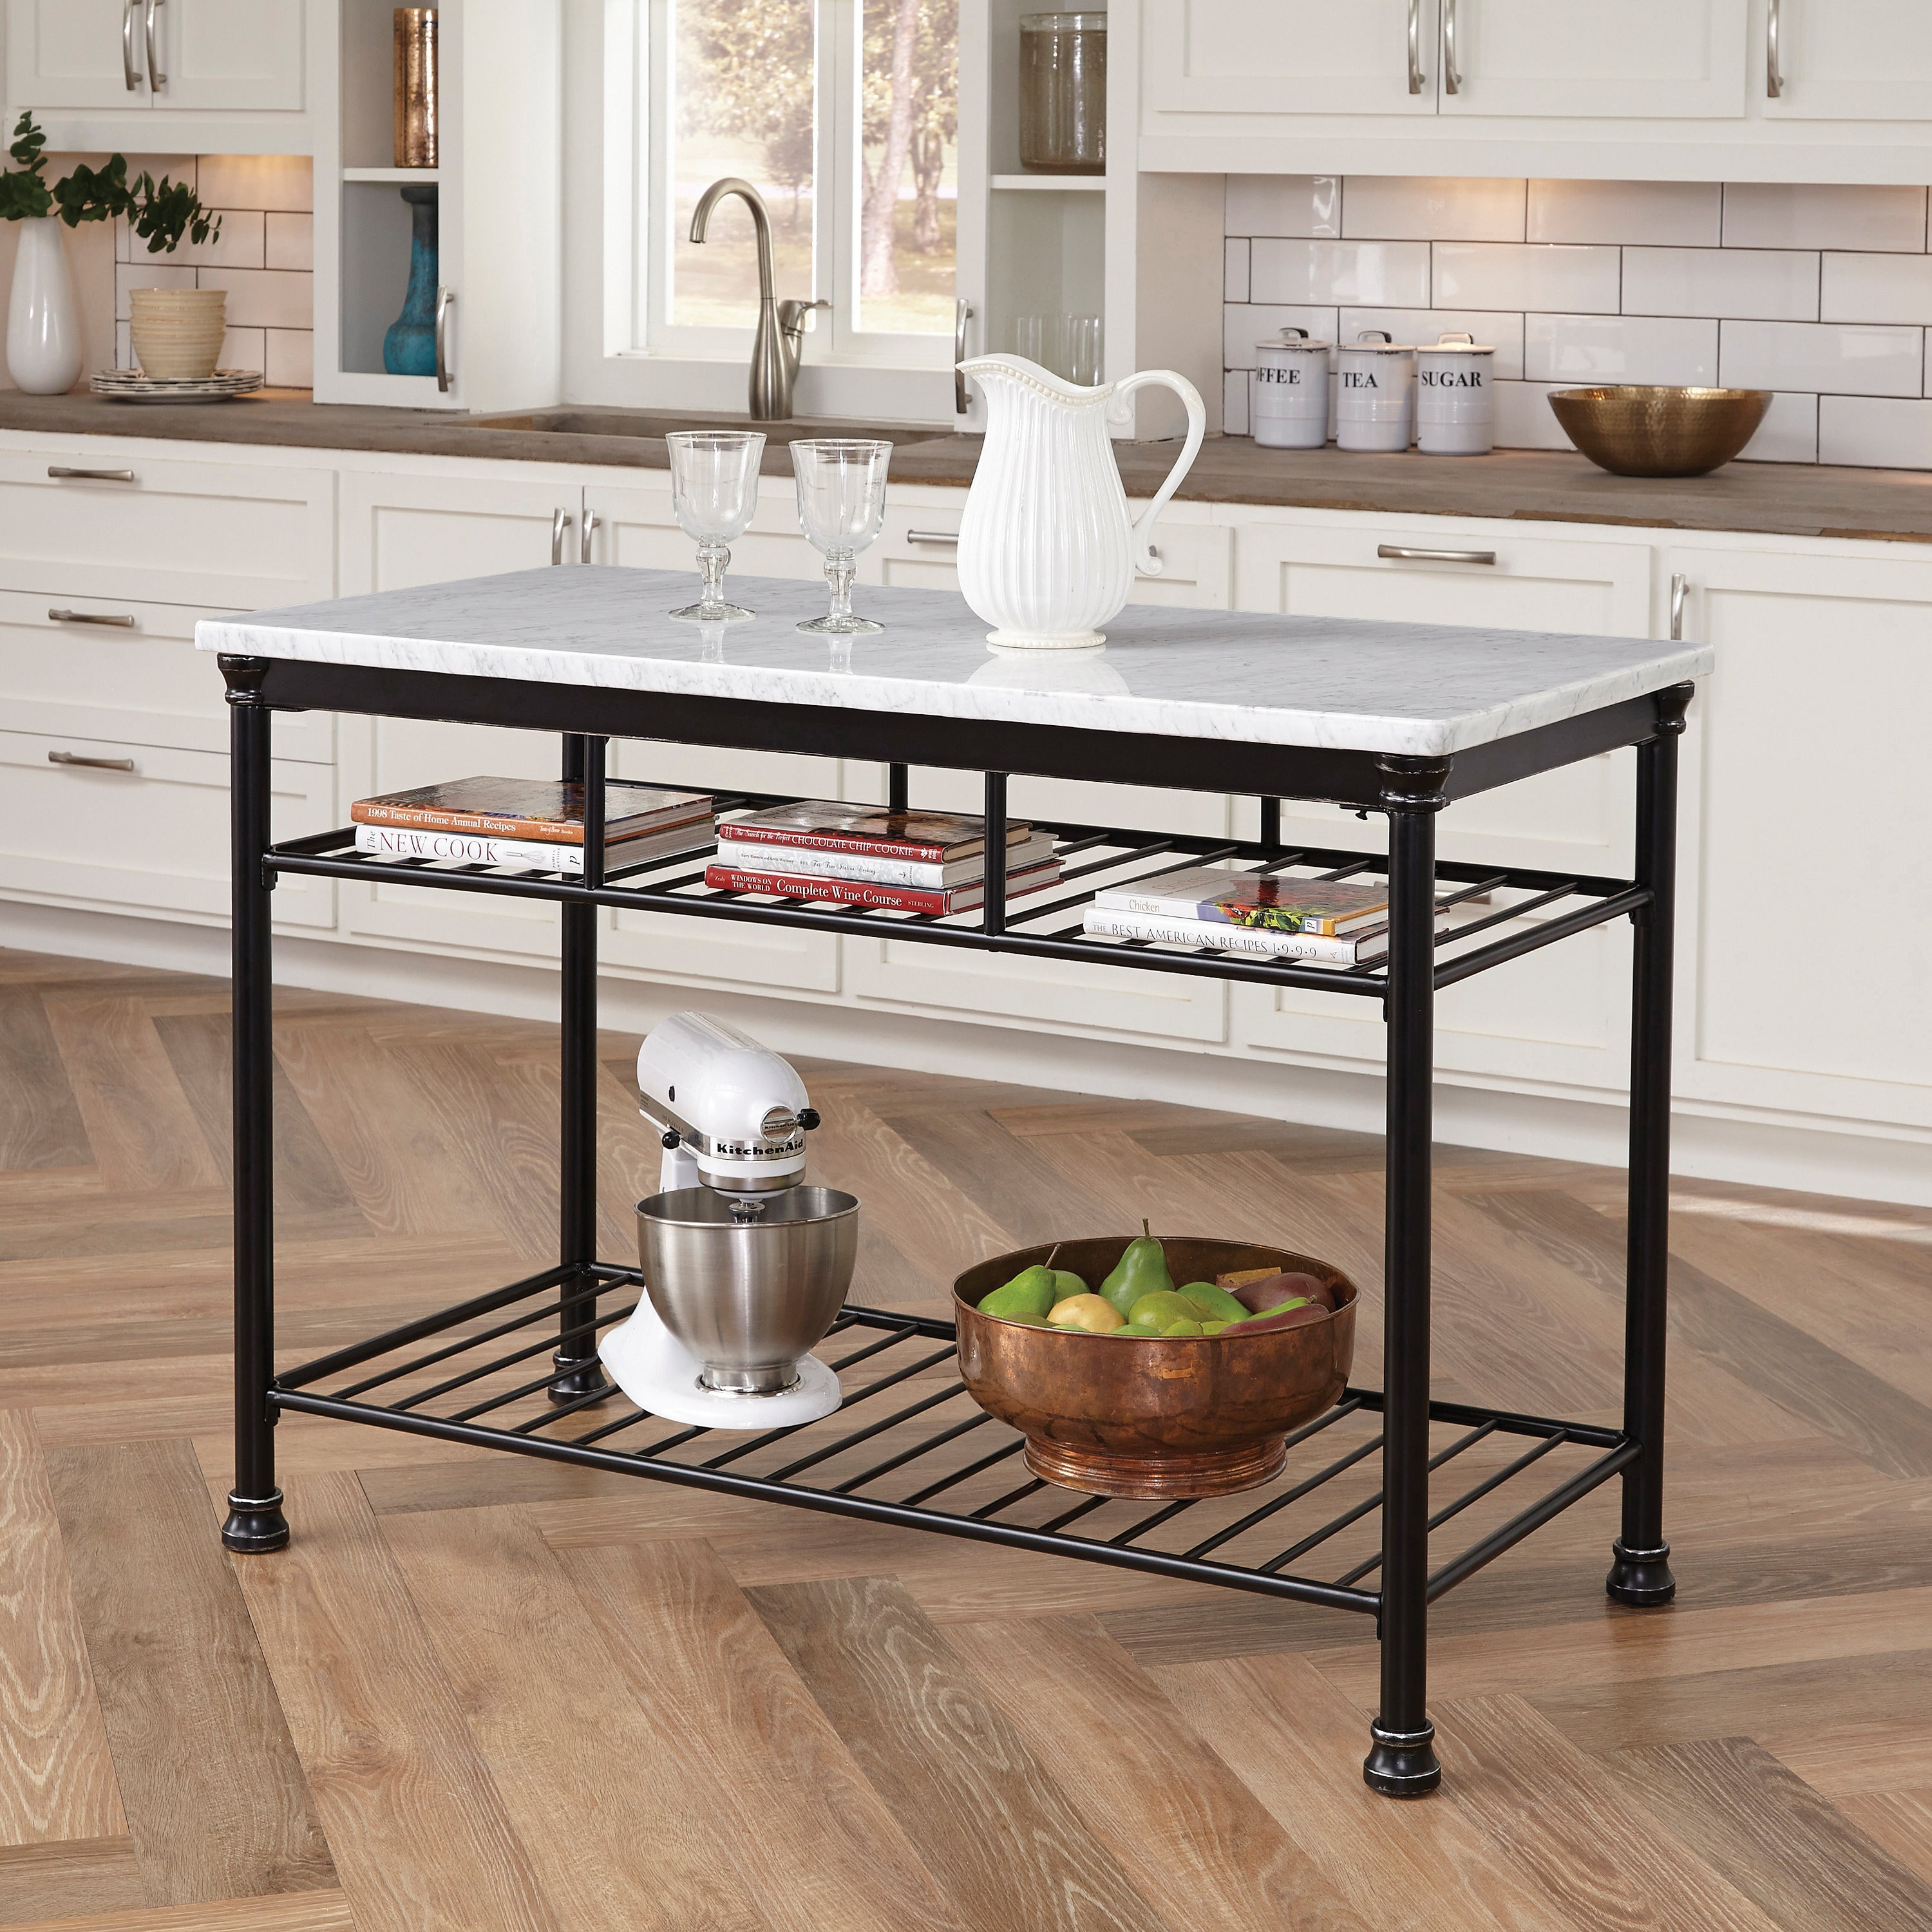 Shop The Gray Barn Cranberry Field Kitchen Island Free Shipping On - Overstock kitchen island